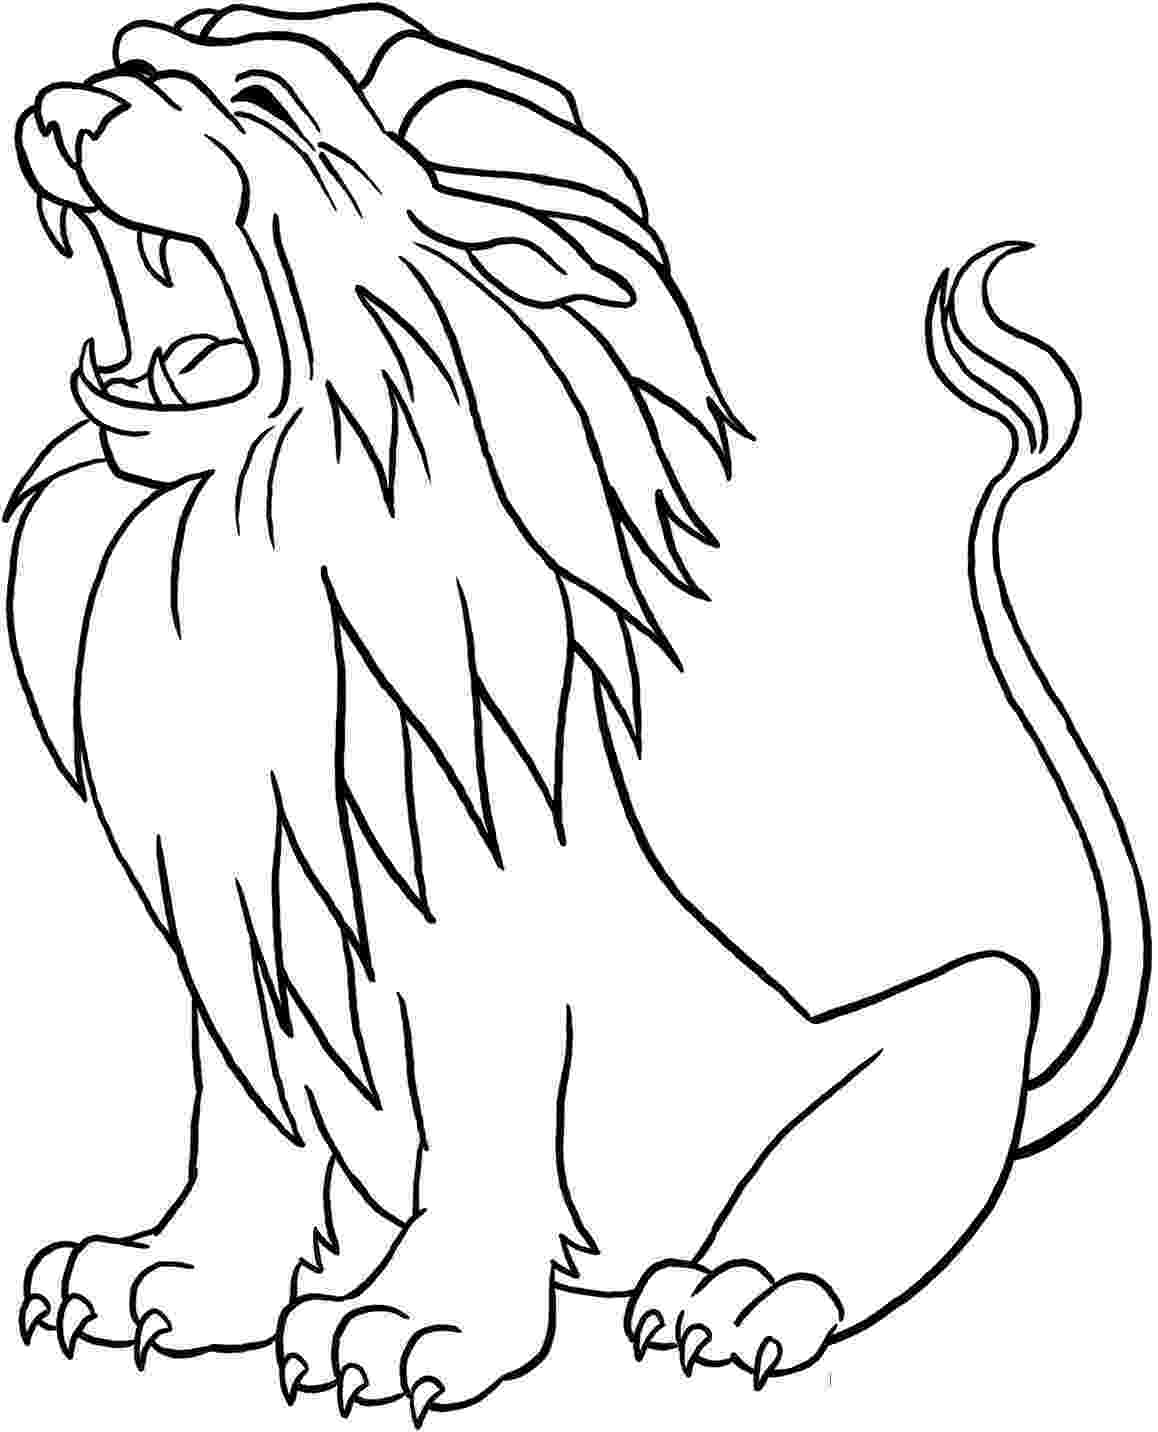 pictures of lions to color lion free printable templates coloring pages lions color of to pictures